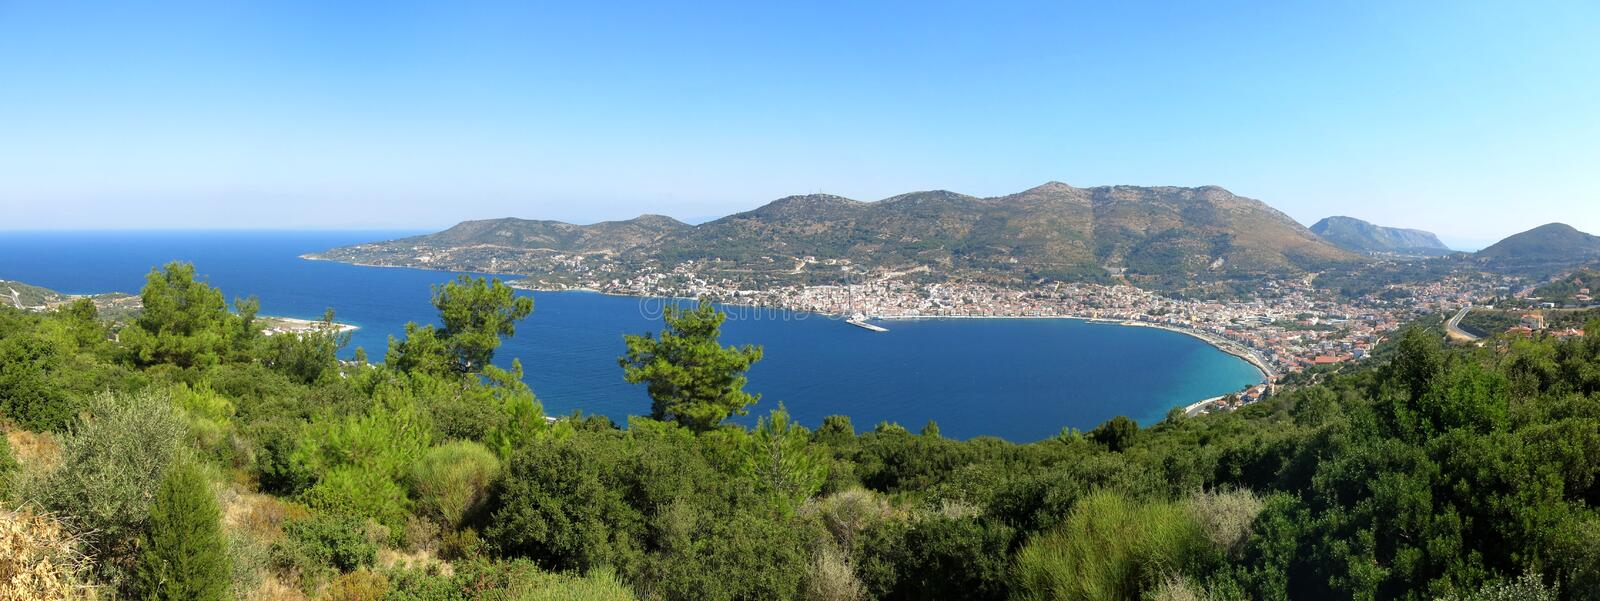 View on the capital of Samos island royalty free stock photography